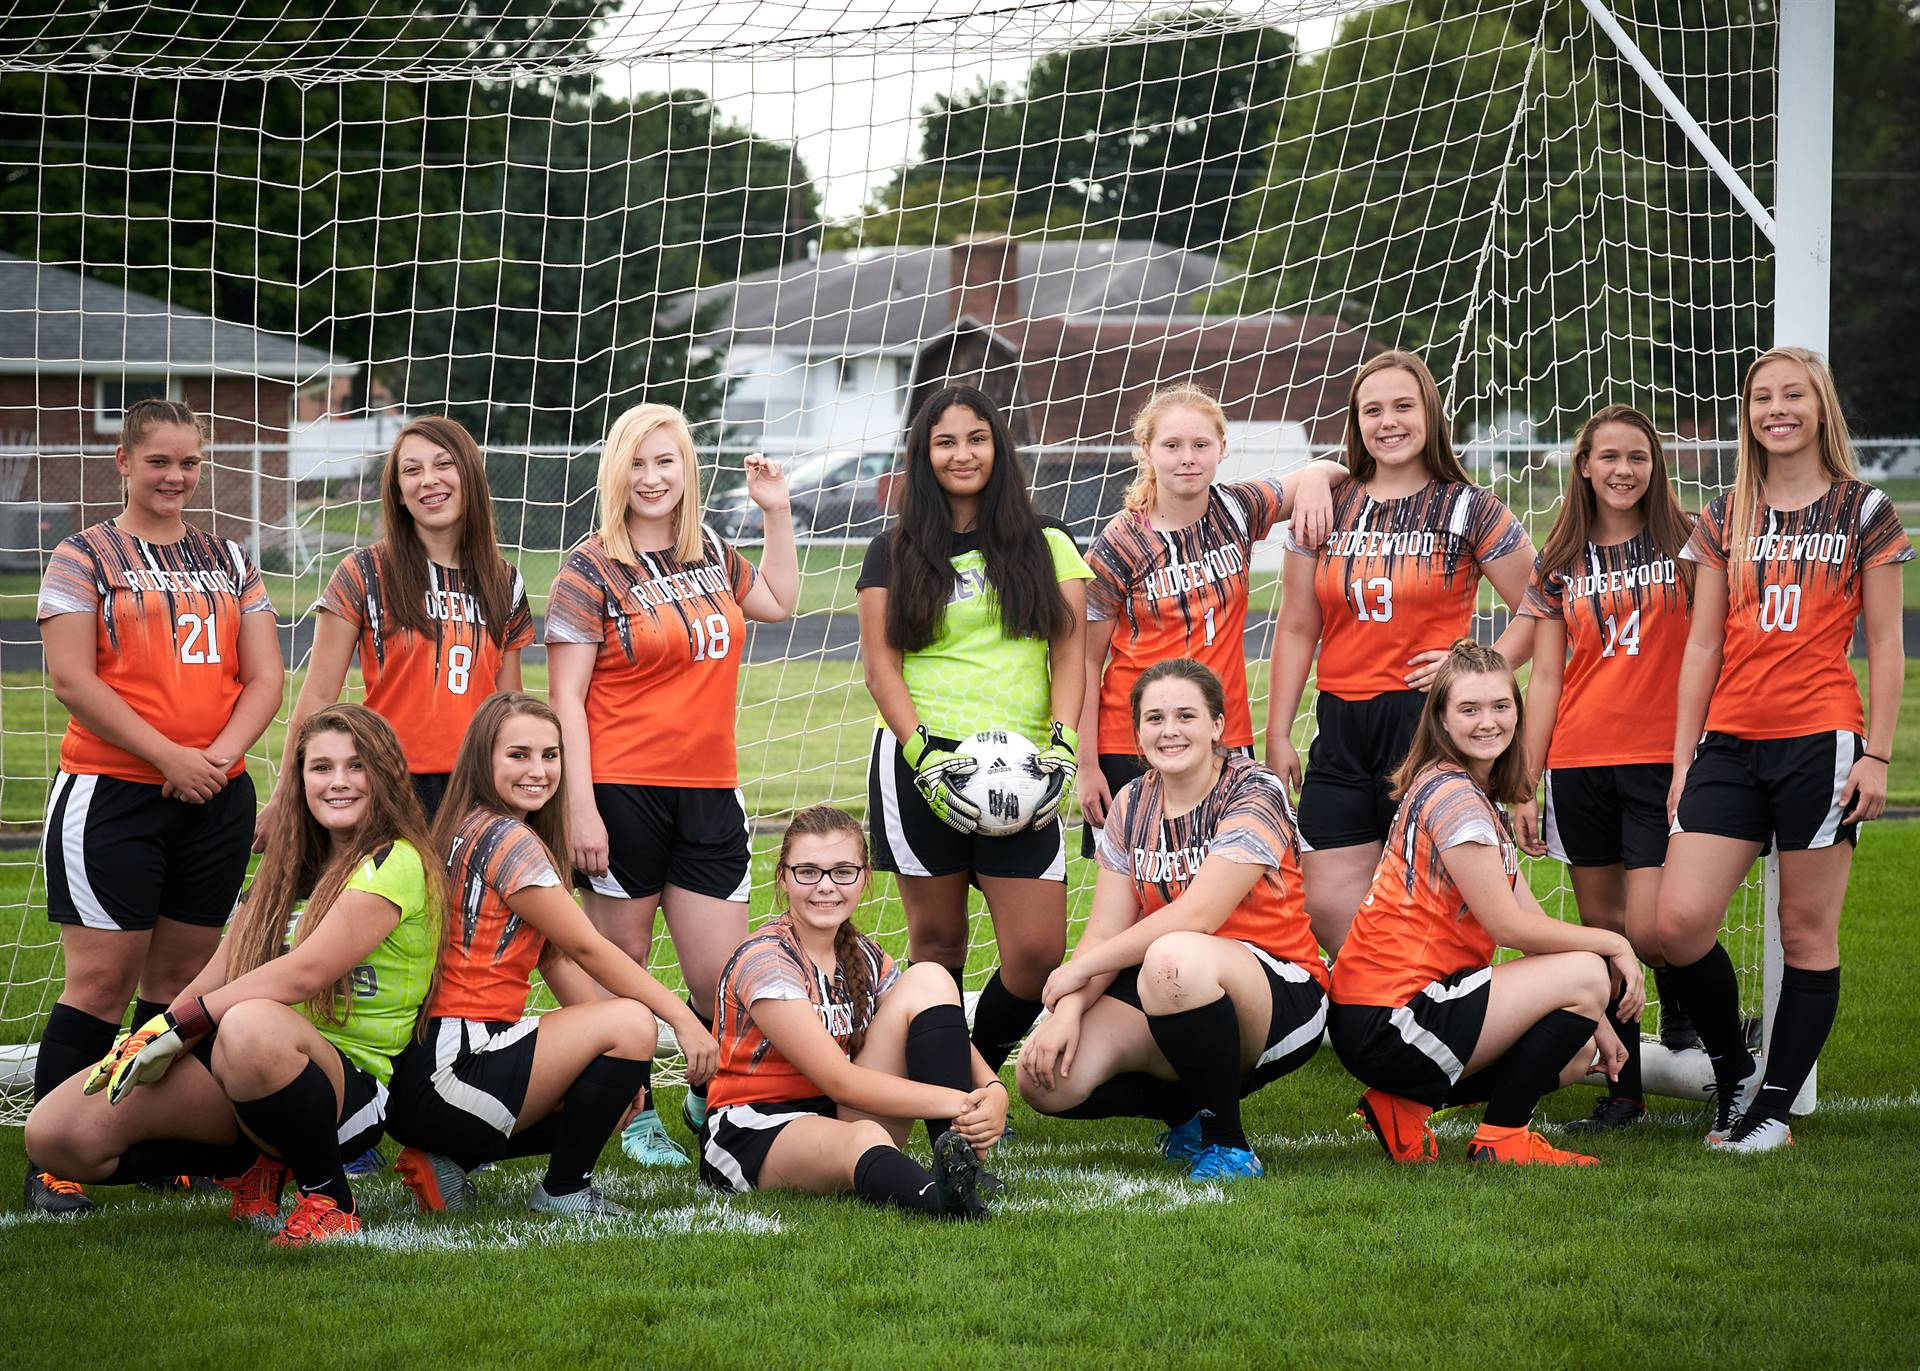 HS Soccer - Returning Lettermen